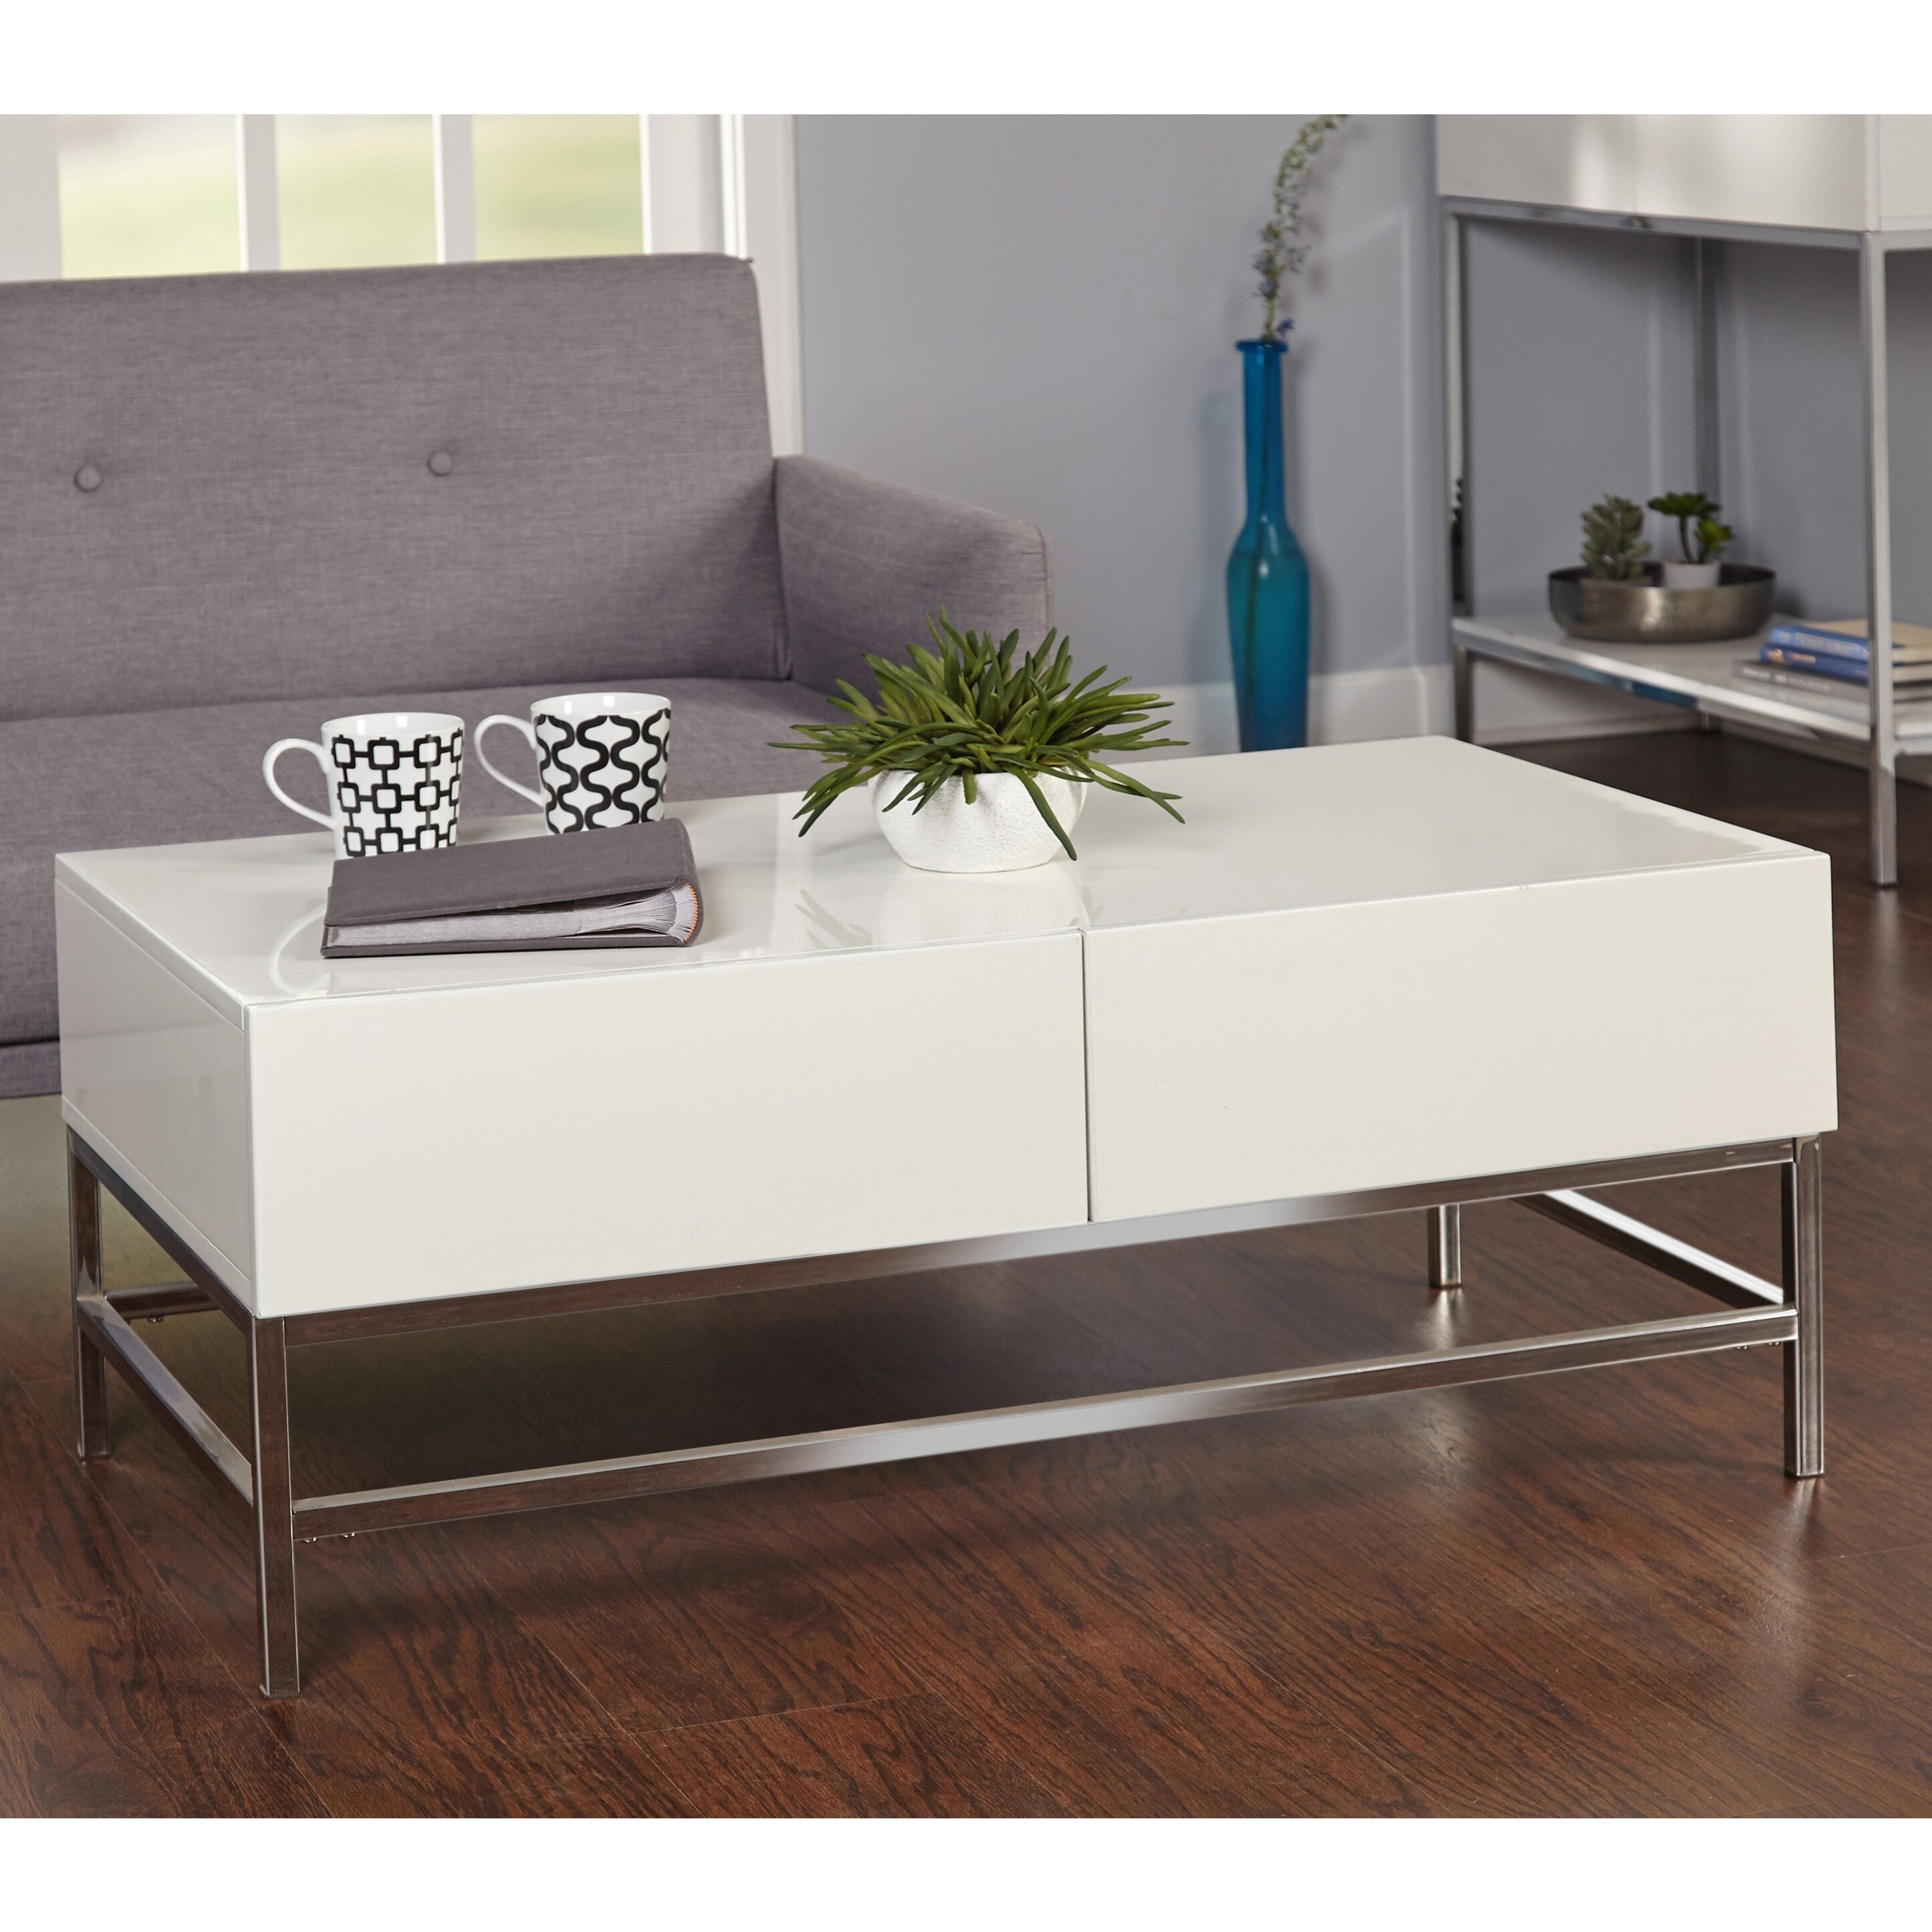 Simple Living White Metal High Gloss Coffee Table Free Shipping Today 12525095